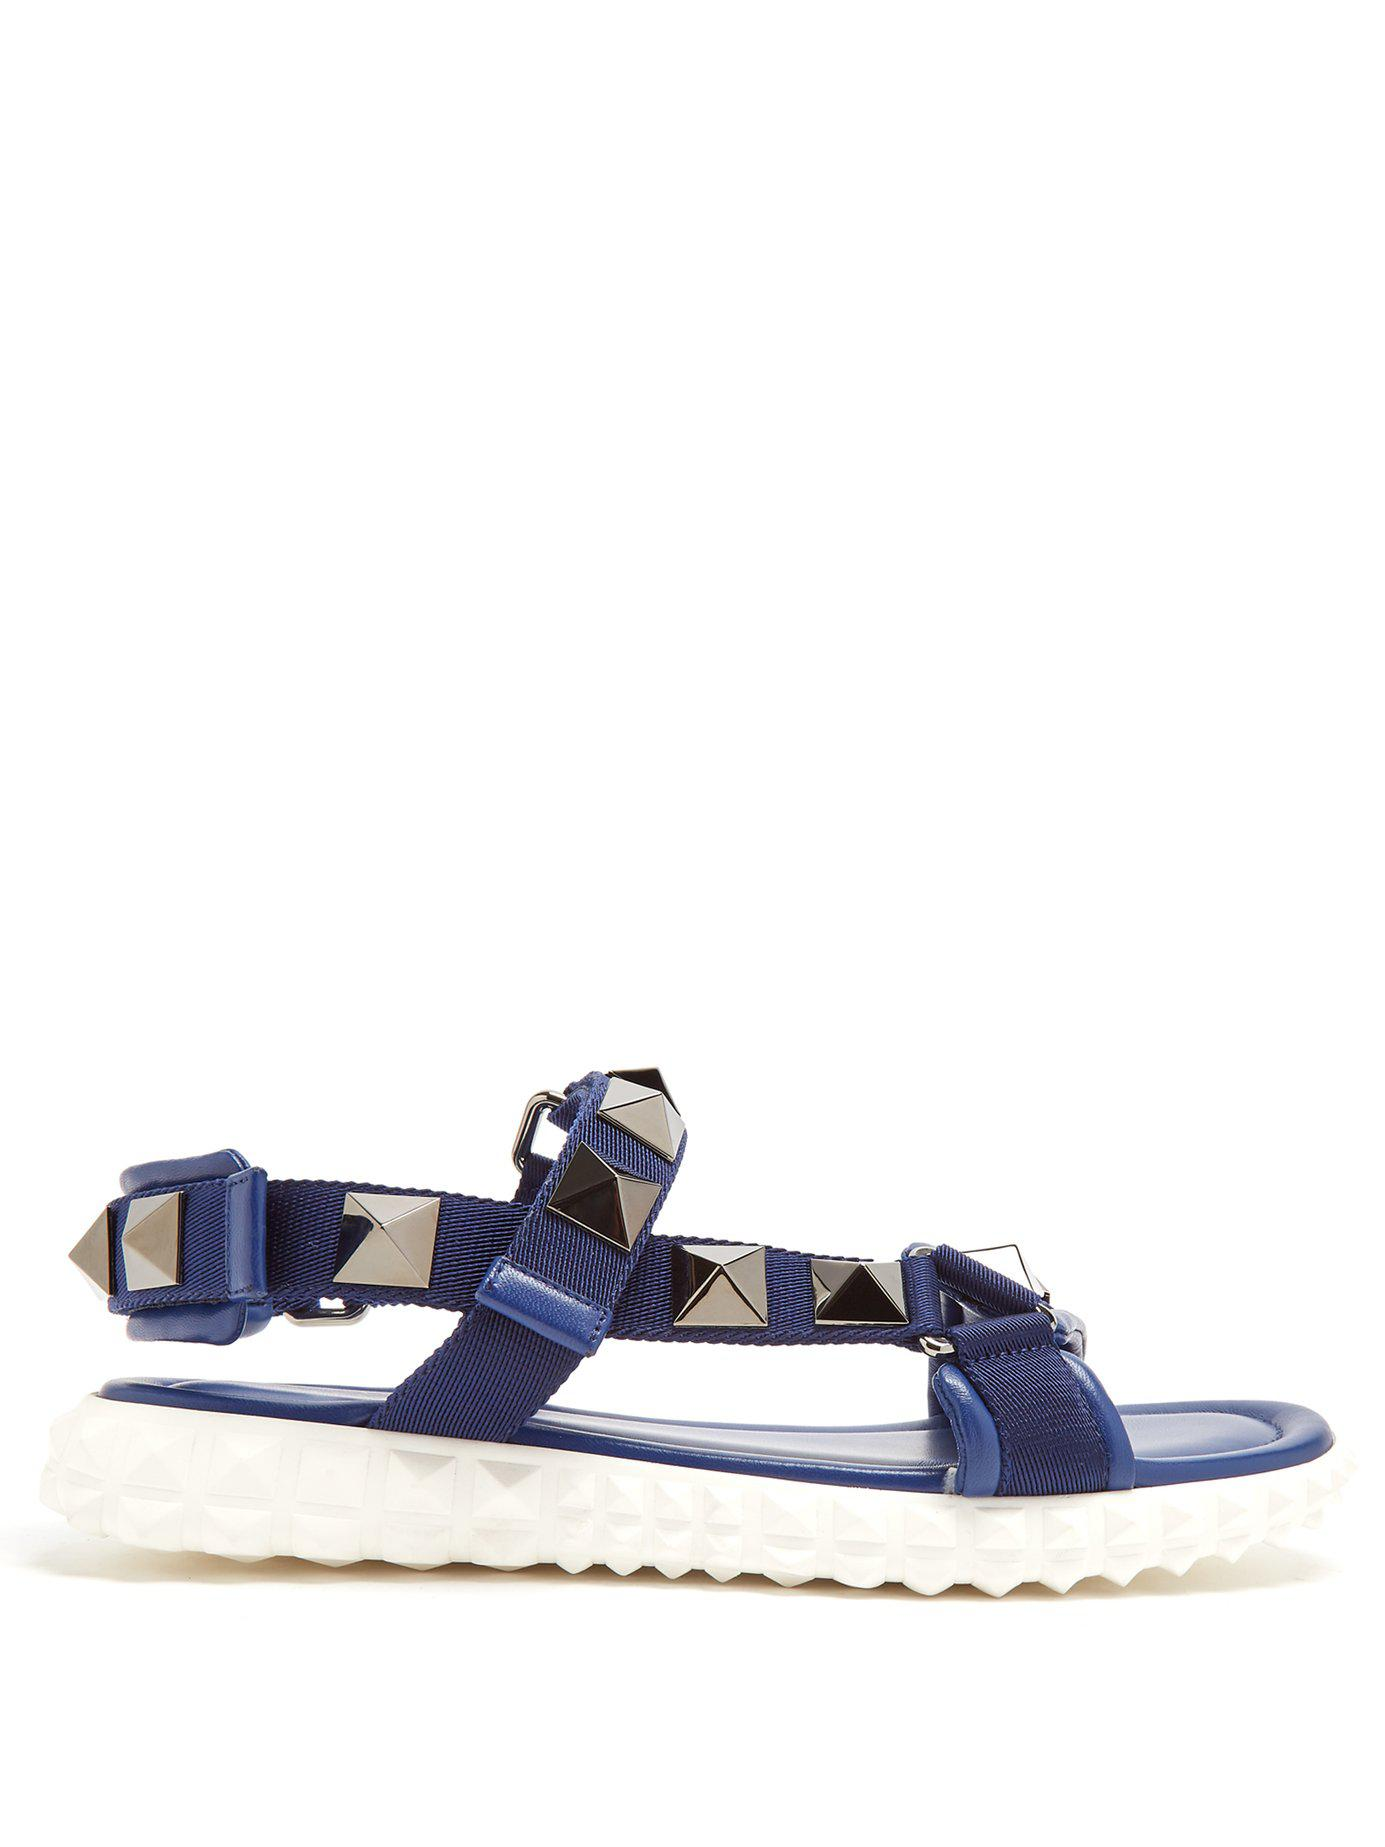 7a5585f30204 Lyst - Valentino Rubber Stud Sole Sandals in Blue